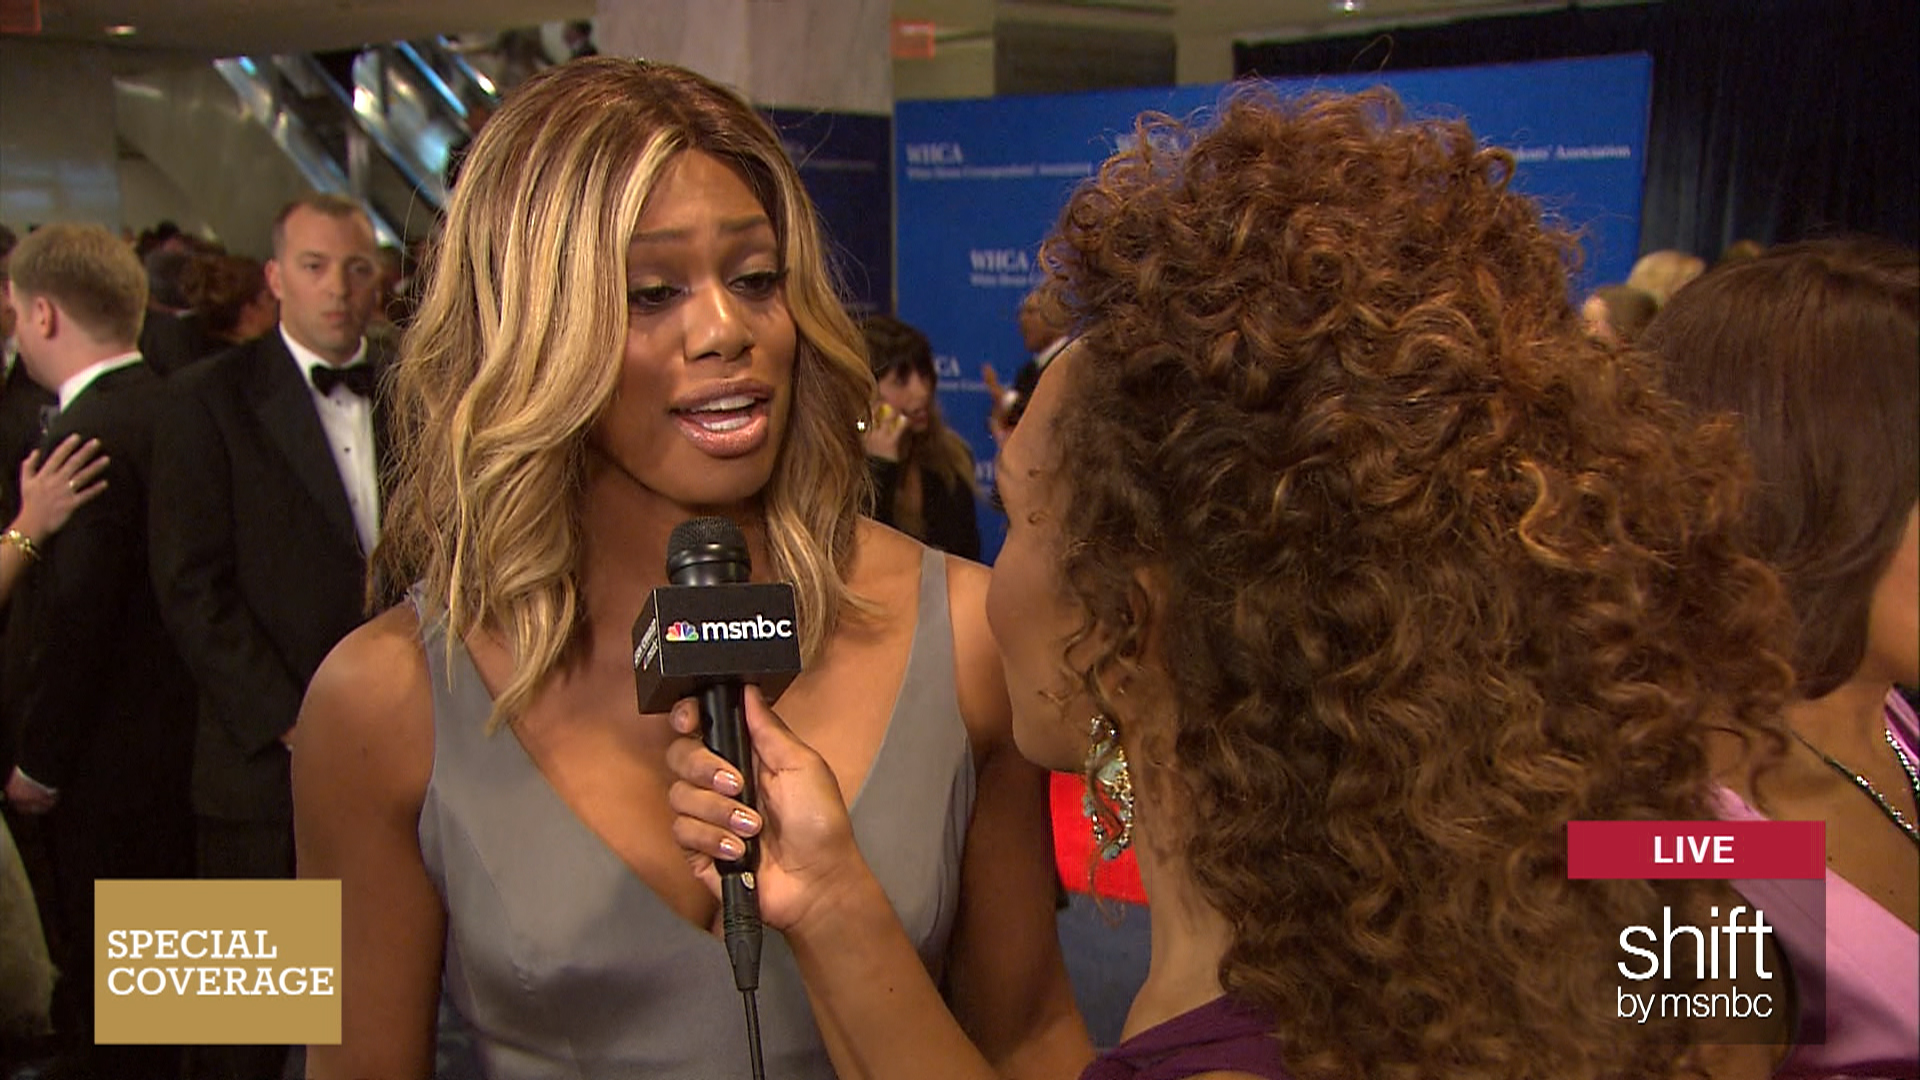 Laverne Cox comments on Jenner interview